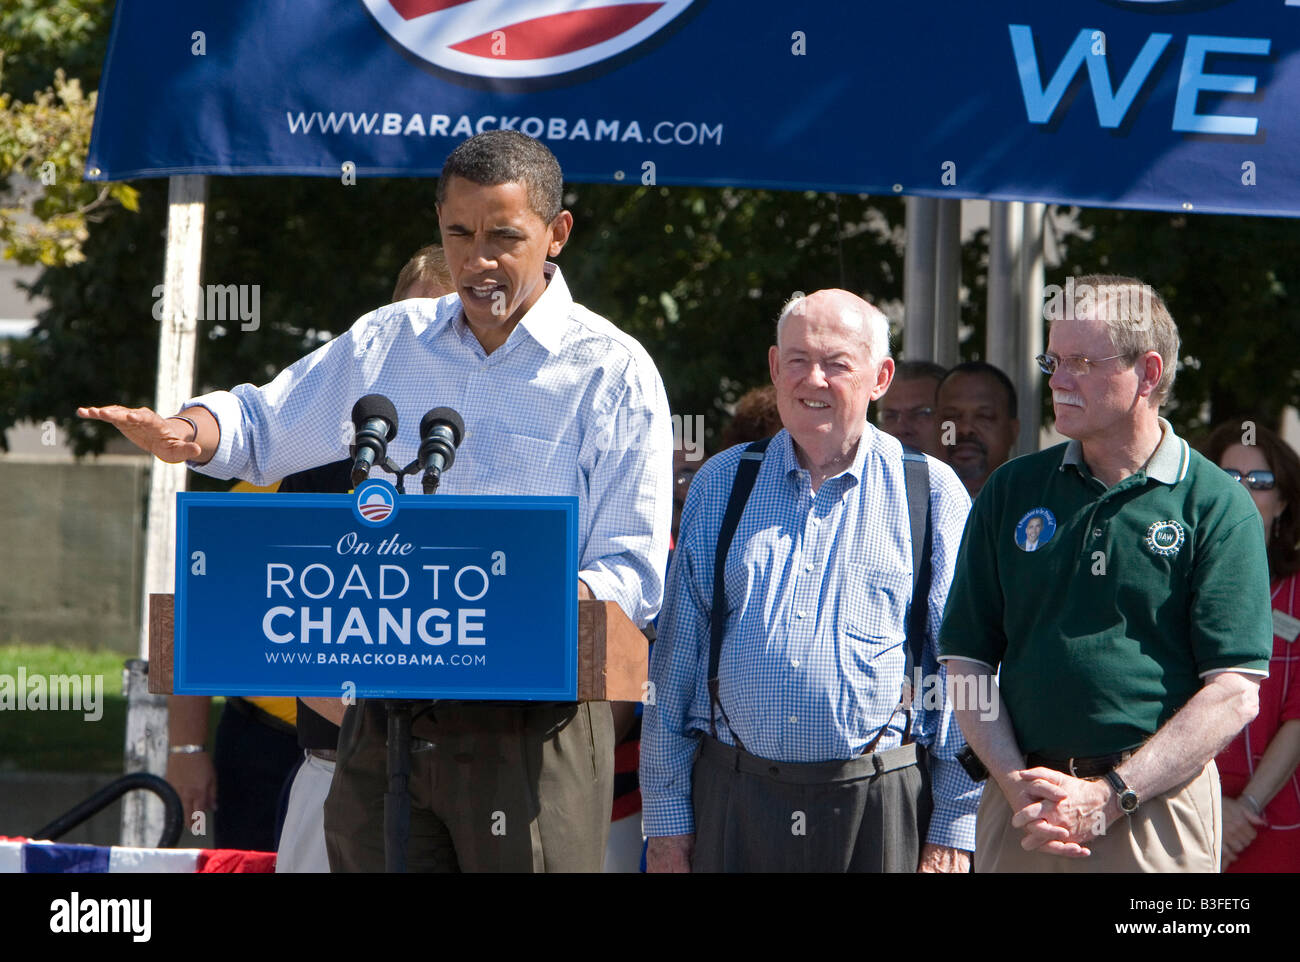 Labor Day Rally for Barack Obama - Stock Image